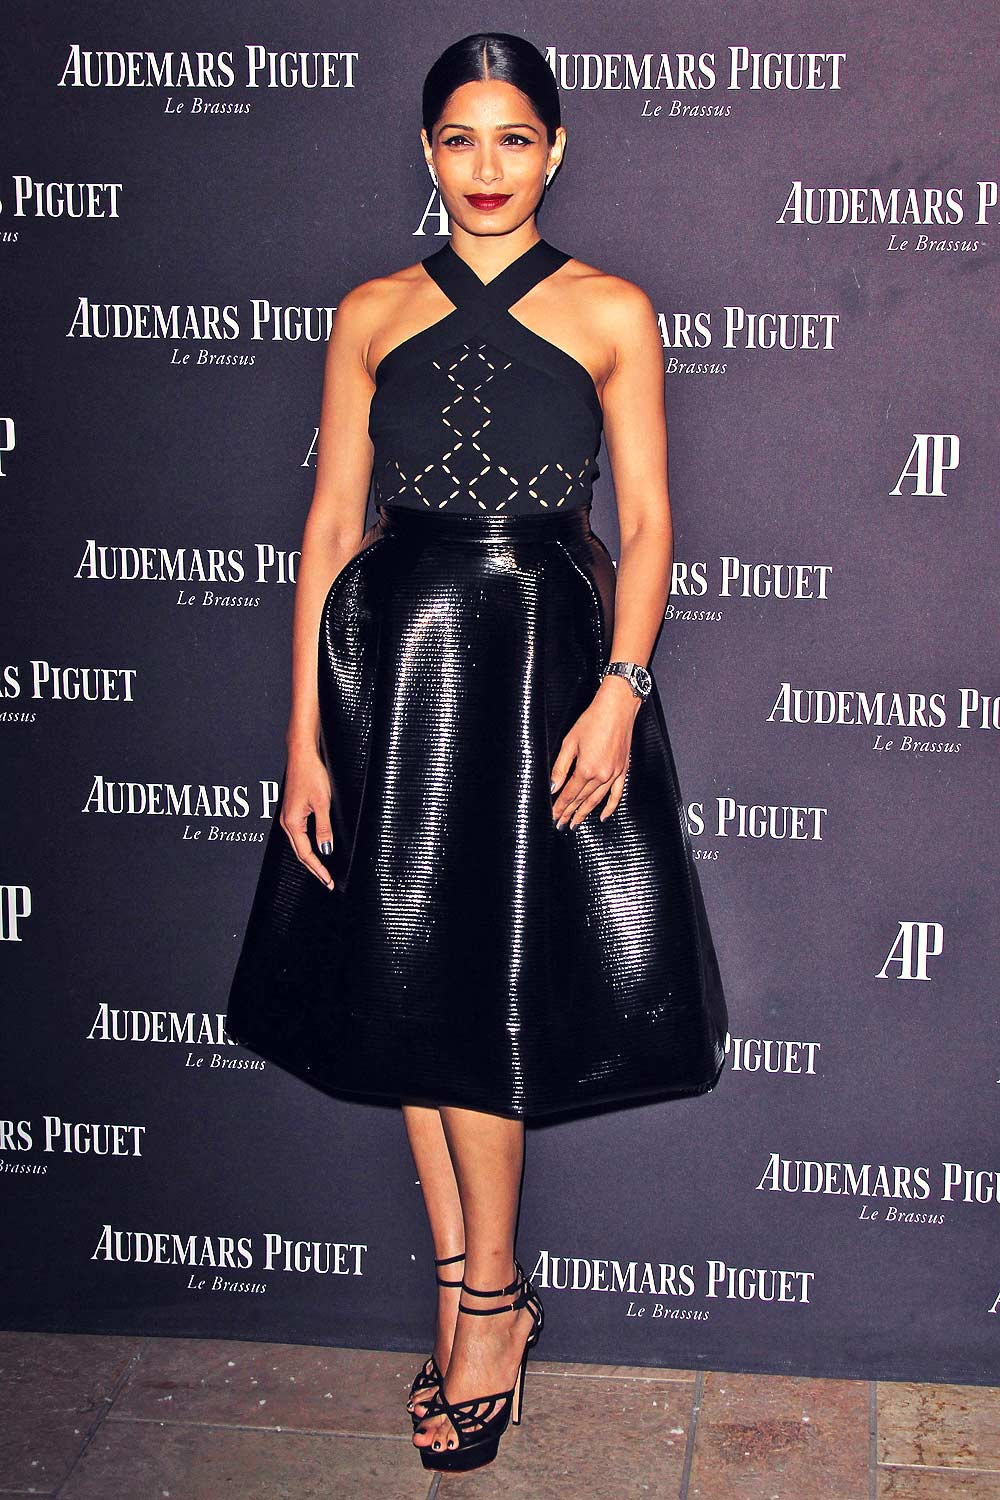 Freida Pinto attends Audemars Piguet Celebrates Grand Opening of Rodeo Drive Boutique